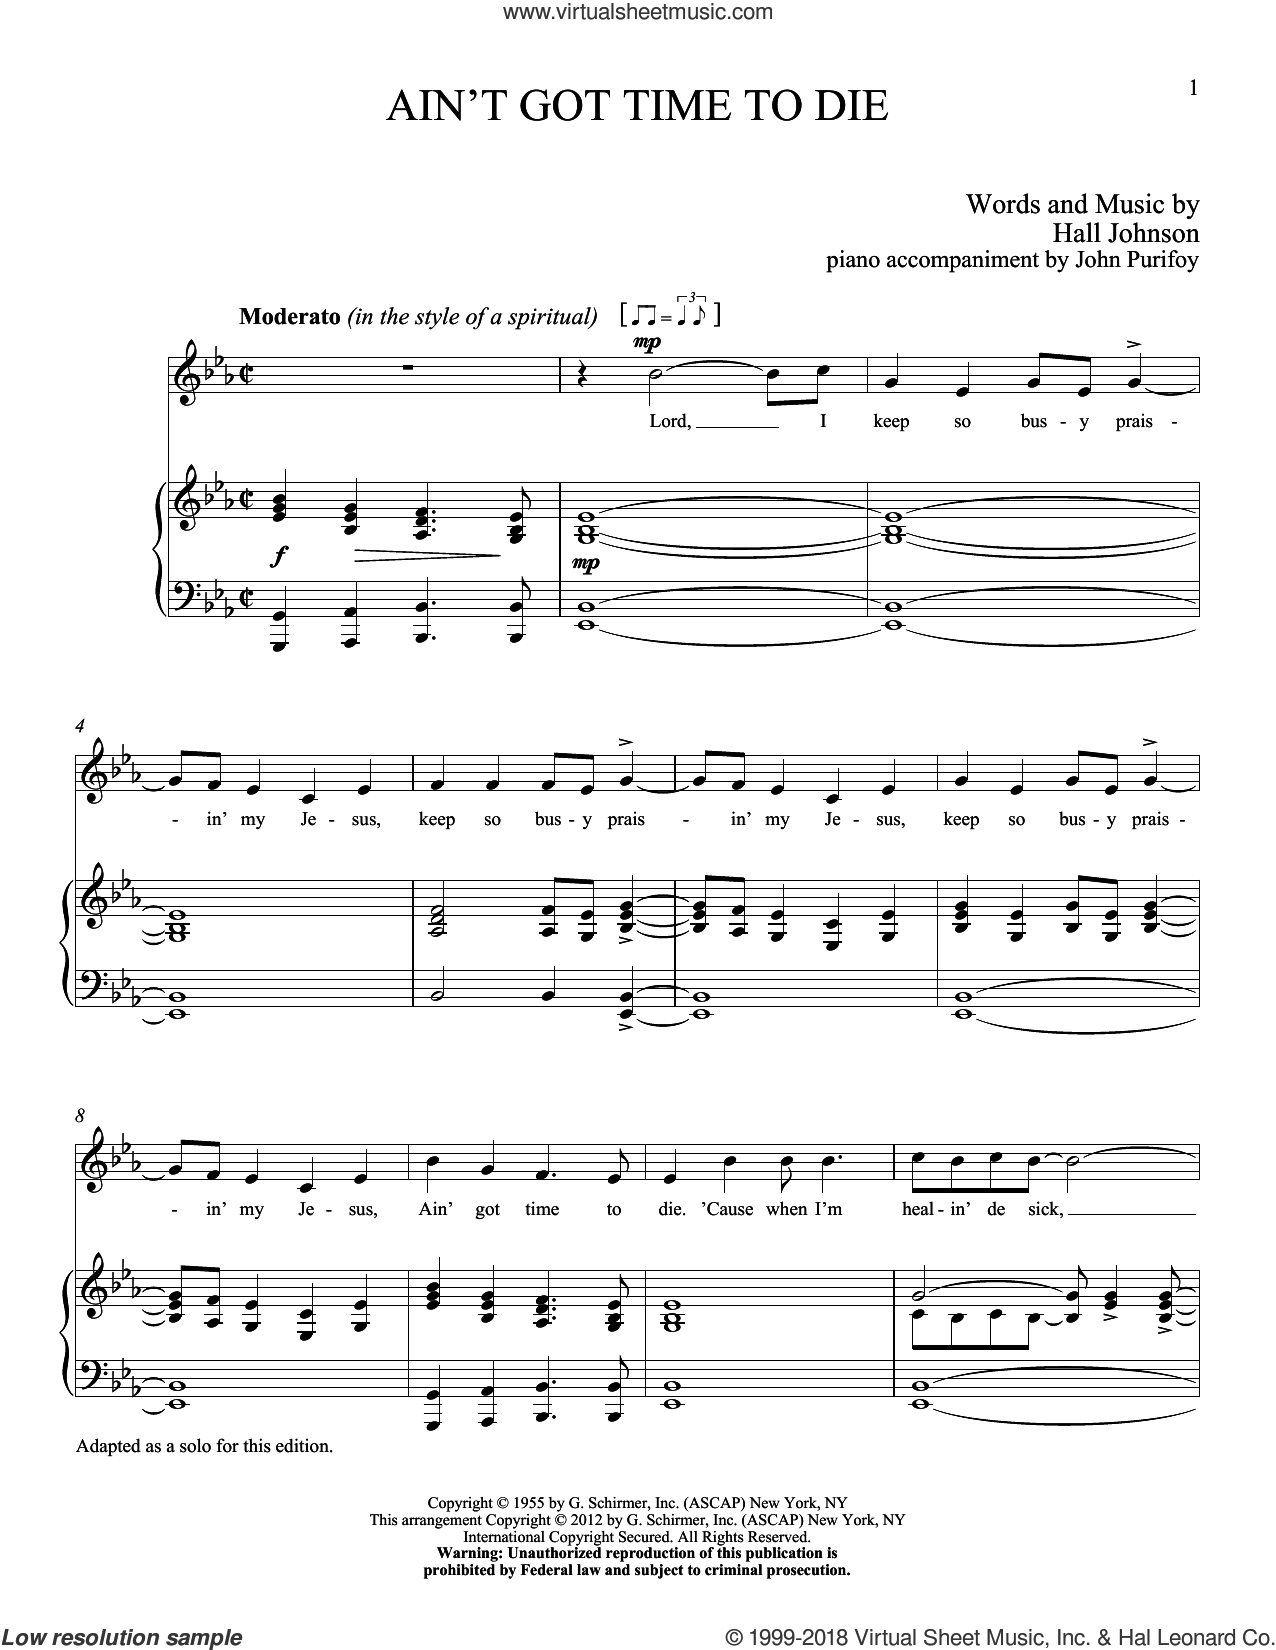 Ain't Got Time to Die sheet music for voice and piano (High ) by Hall Johnson. Score Image Preview.